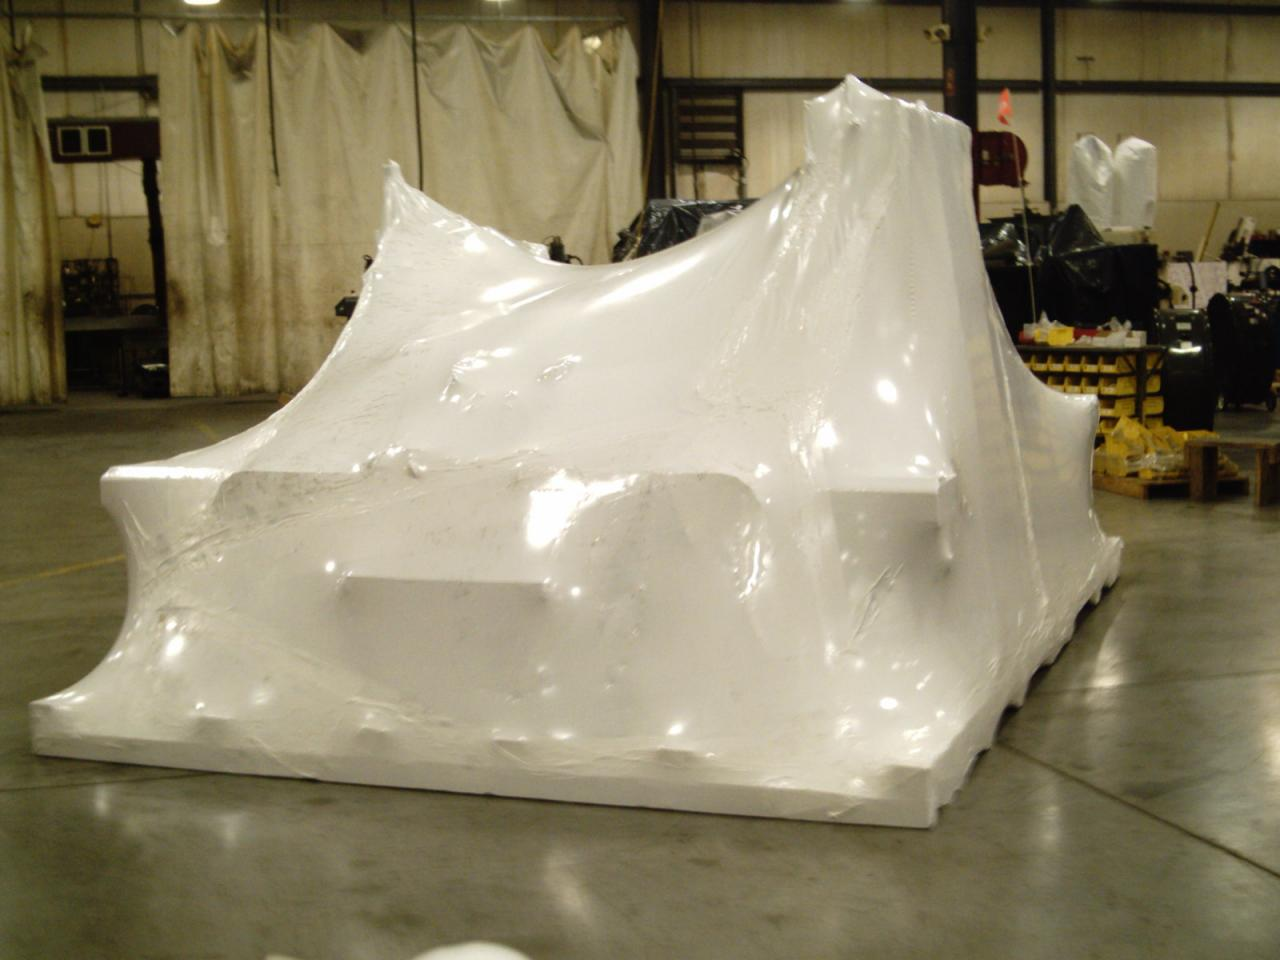 Industrial machine wrapped for shipment